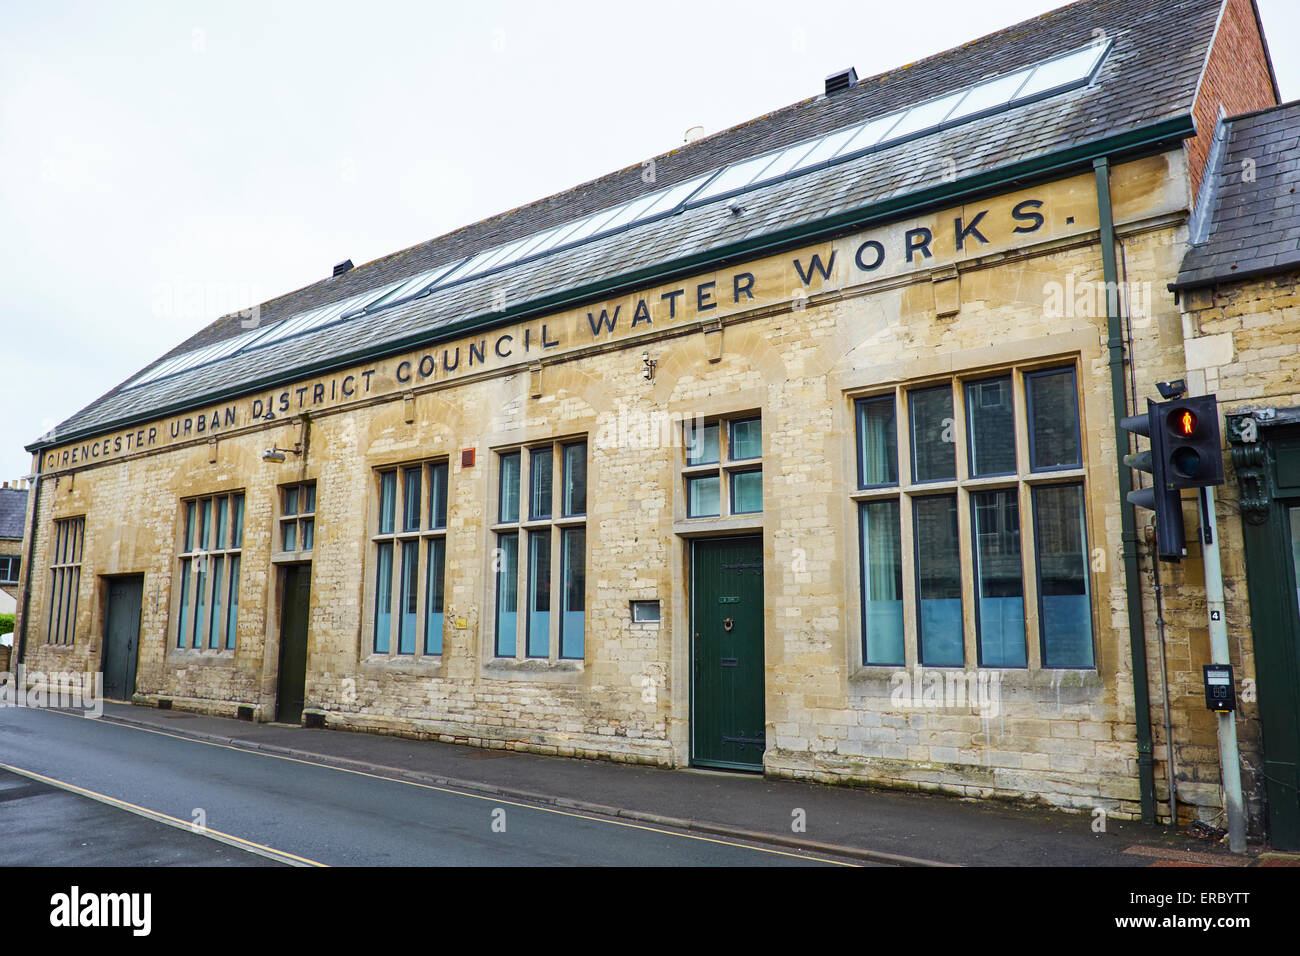 Former Urban District Council Water Works Lewis Lane Cirencester Gloucestershire UK - Stock Image